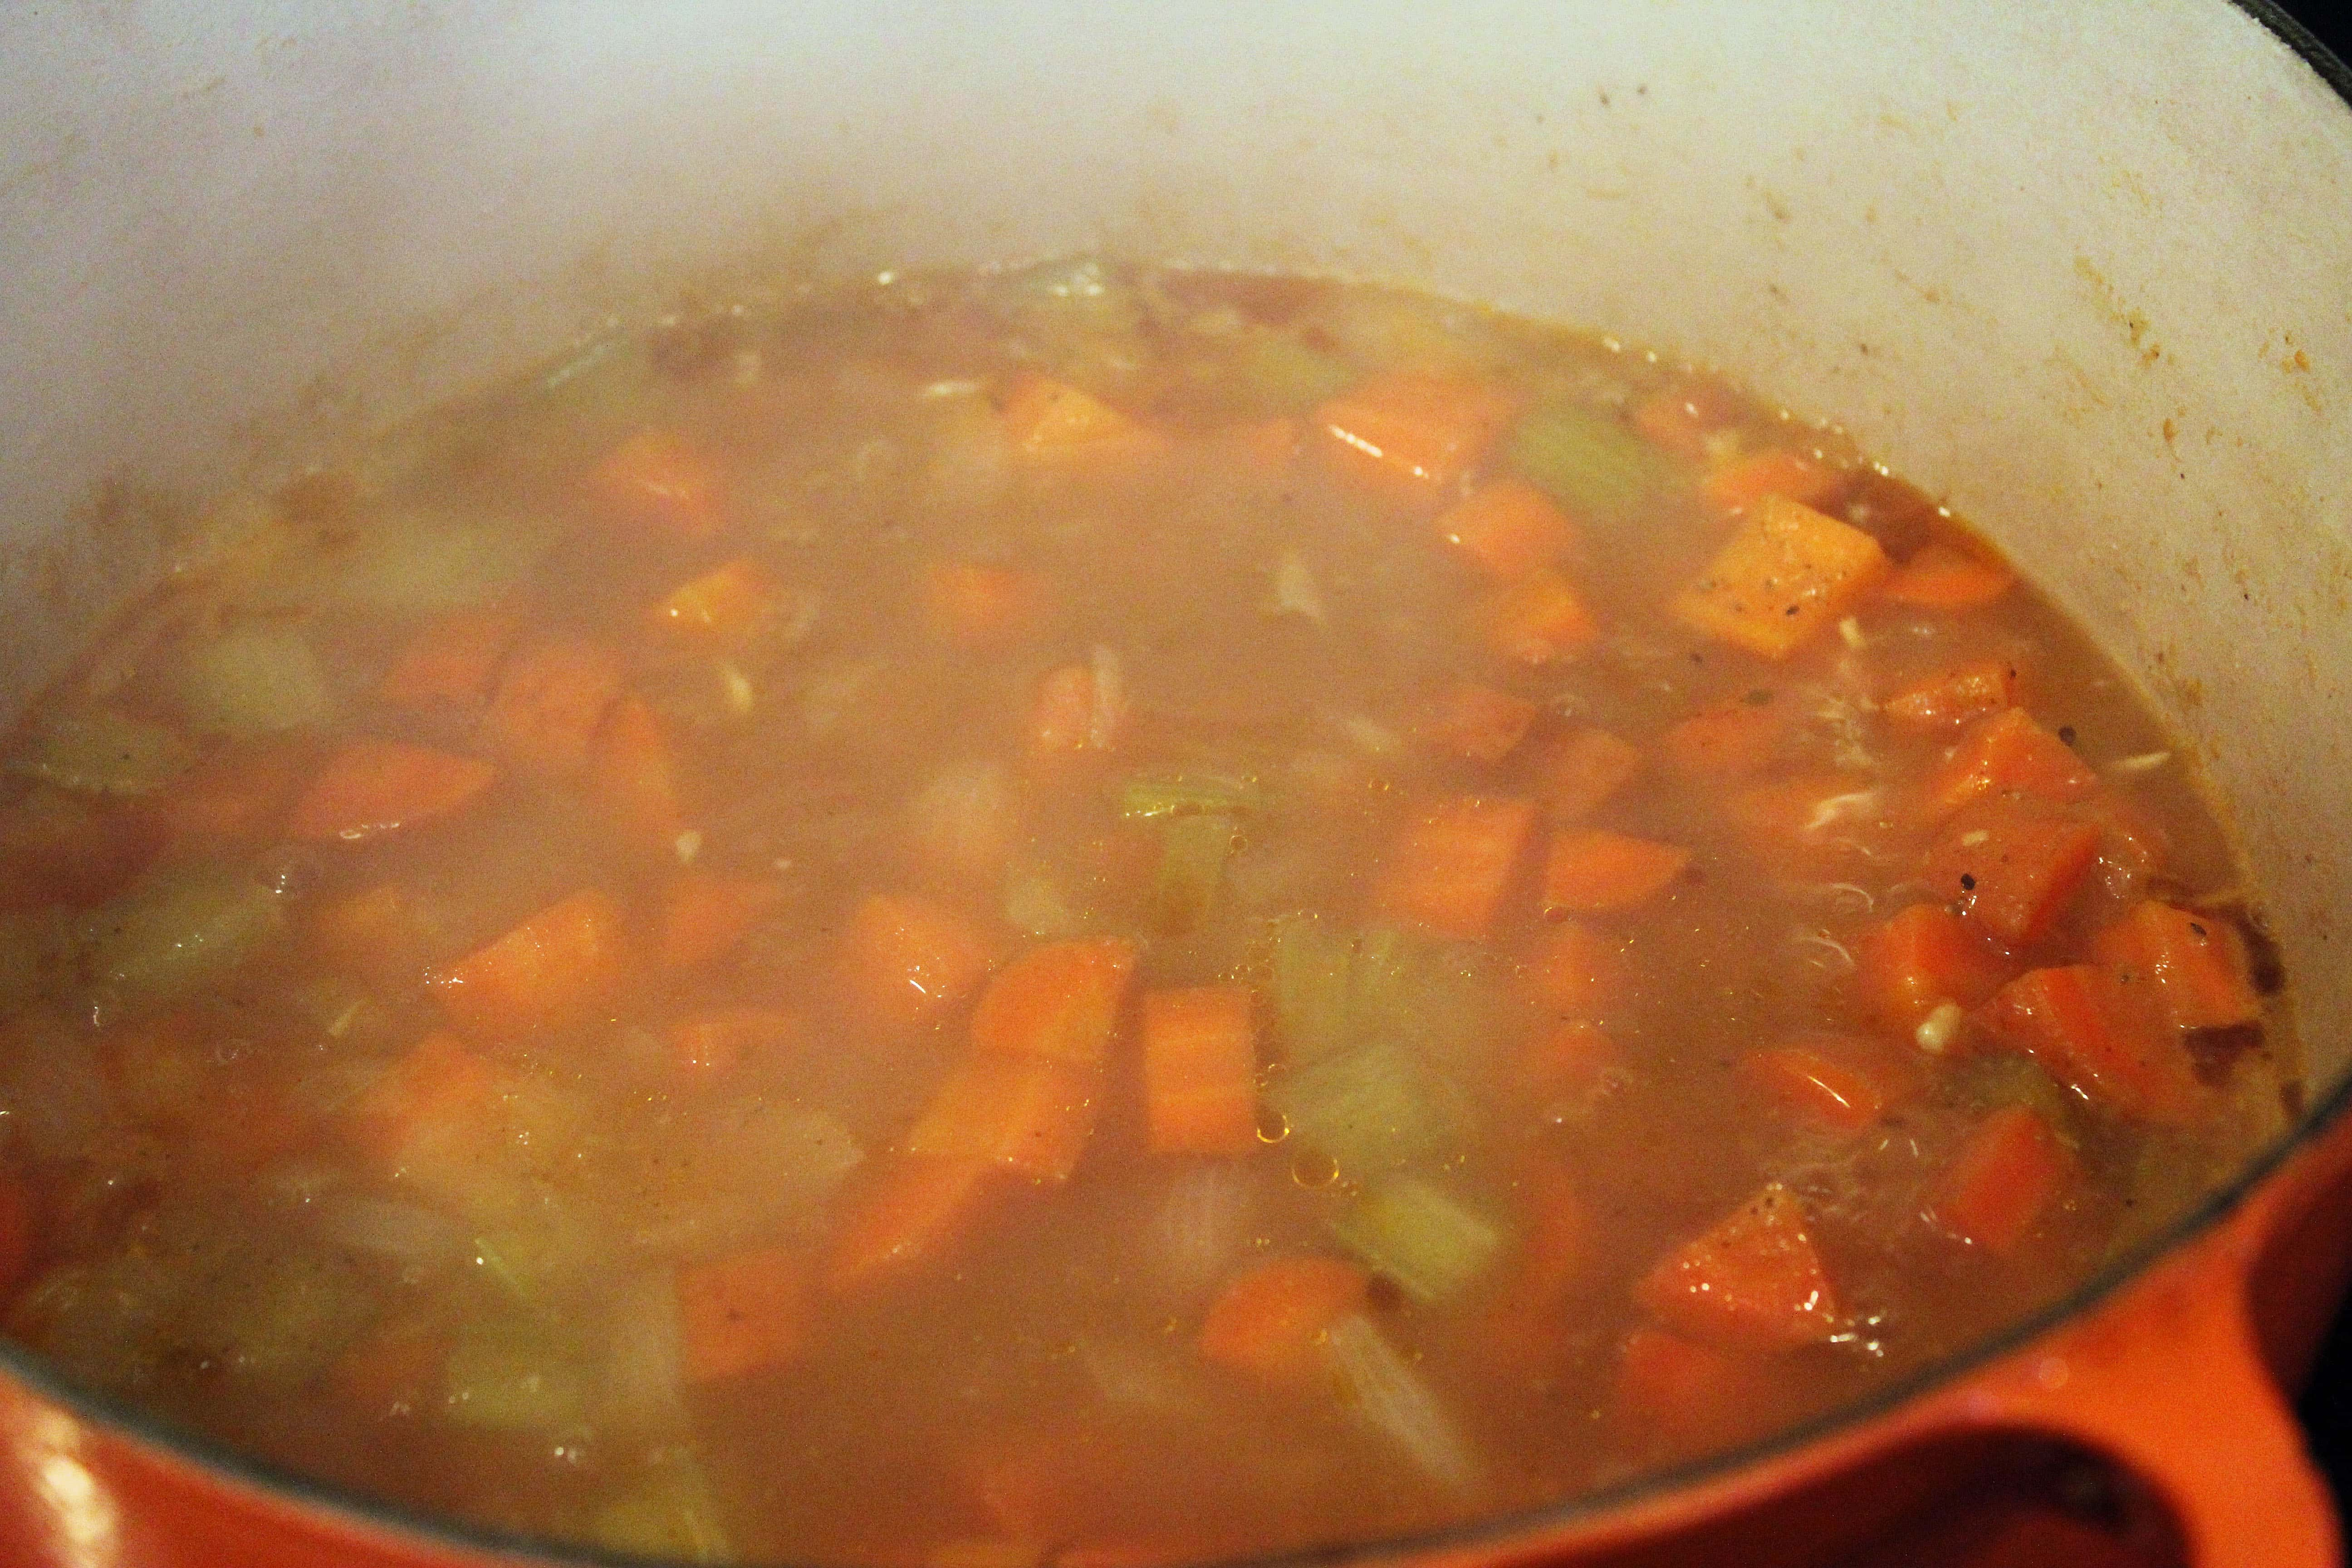 Let soup simmer until tender